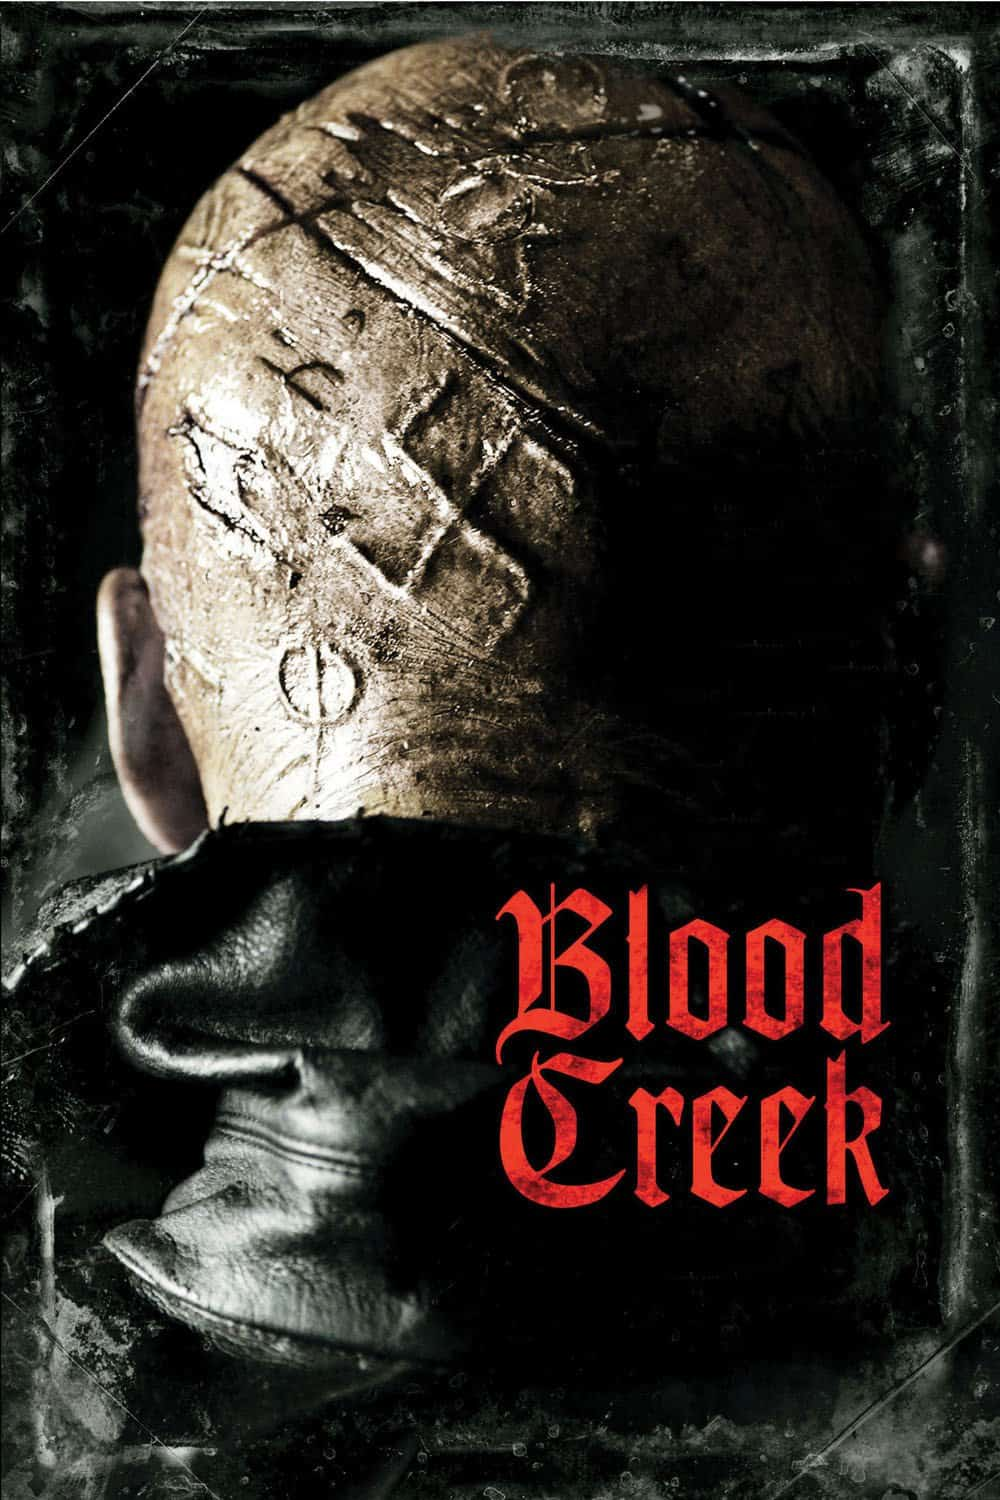 Blood Creek, 2008